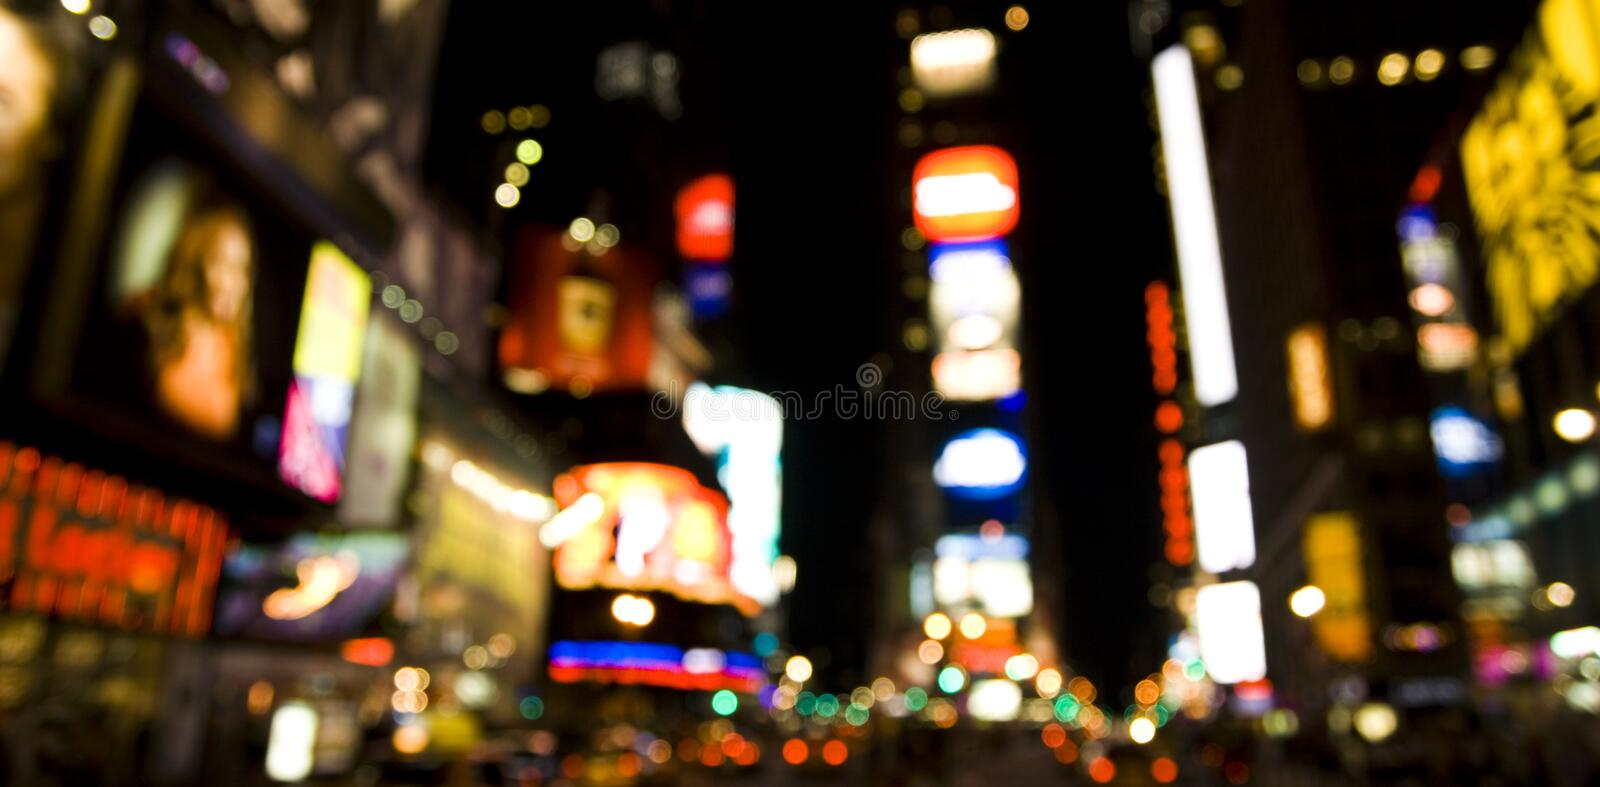 Broadway na noite foto de stock royalty free